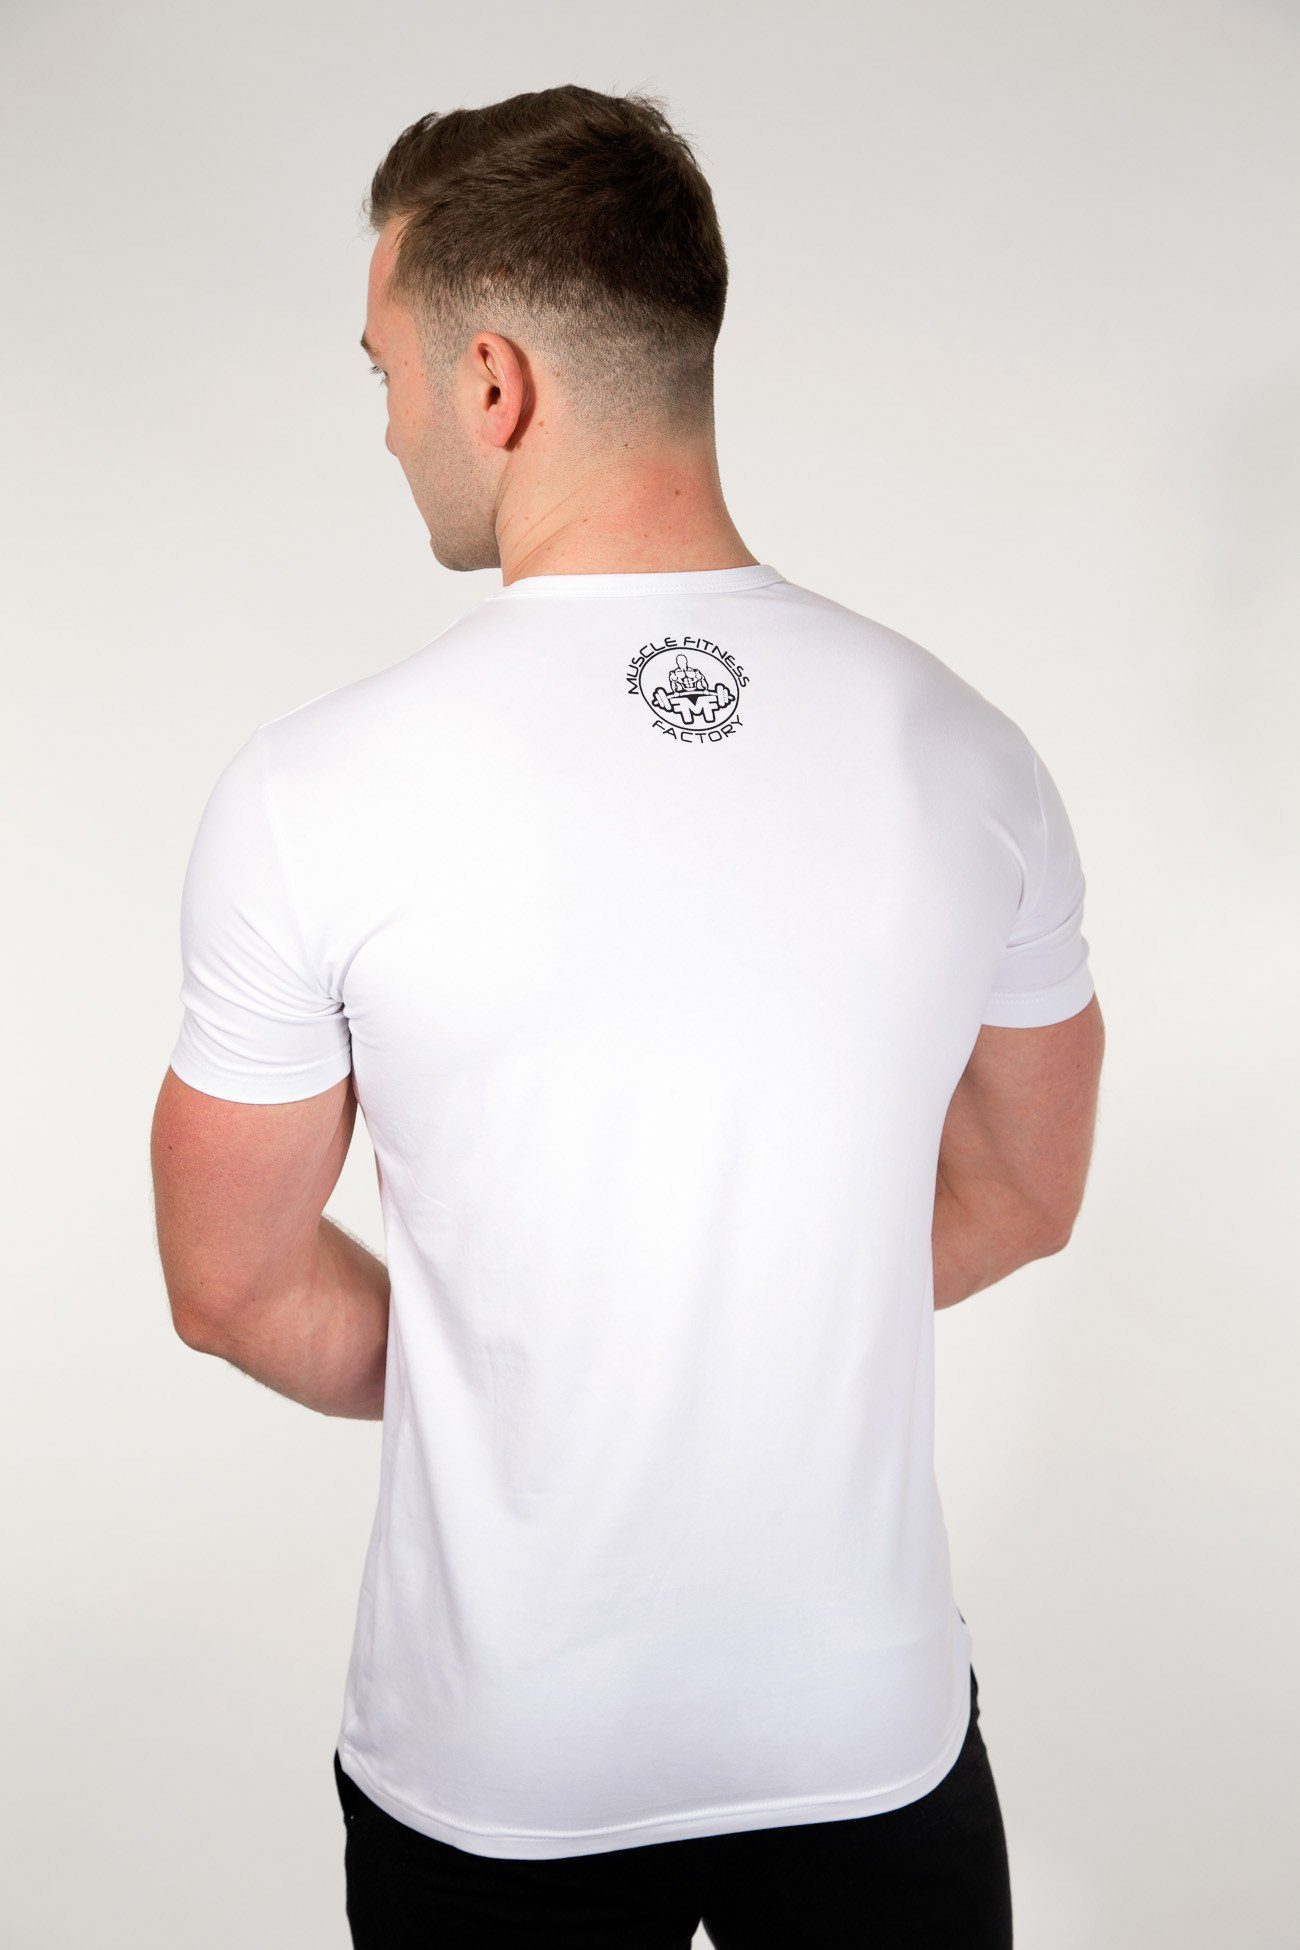 MFF Spartan T-Shirt <br> White/Black - Muscle Fitness Factory